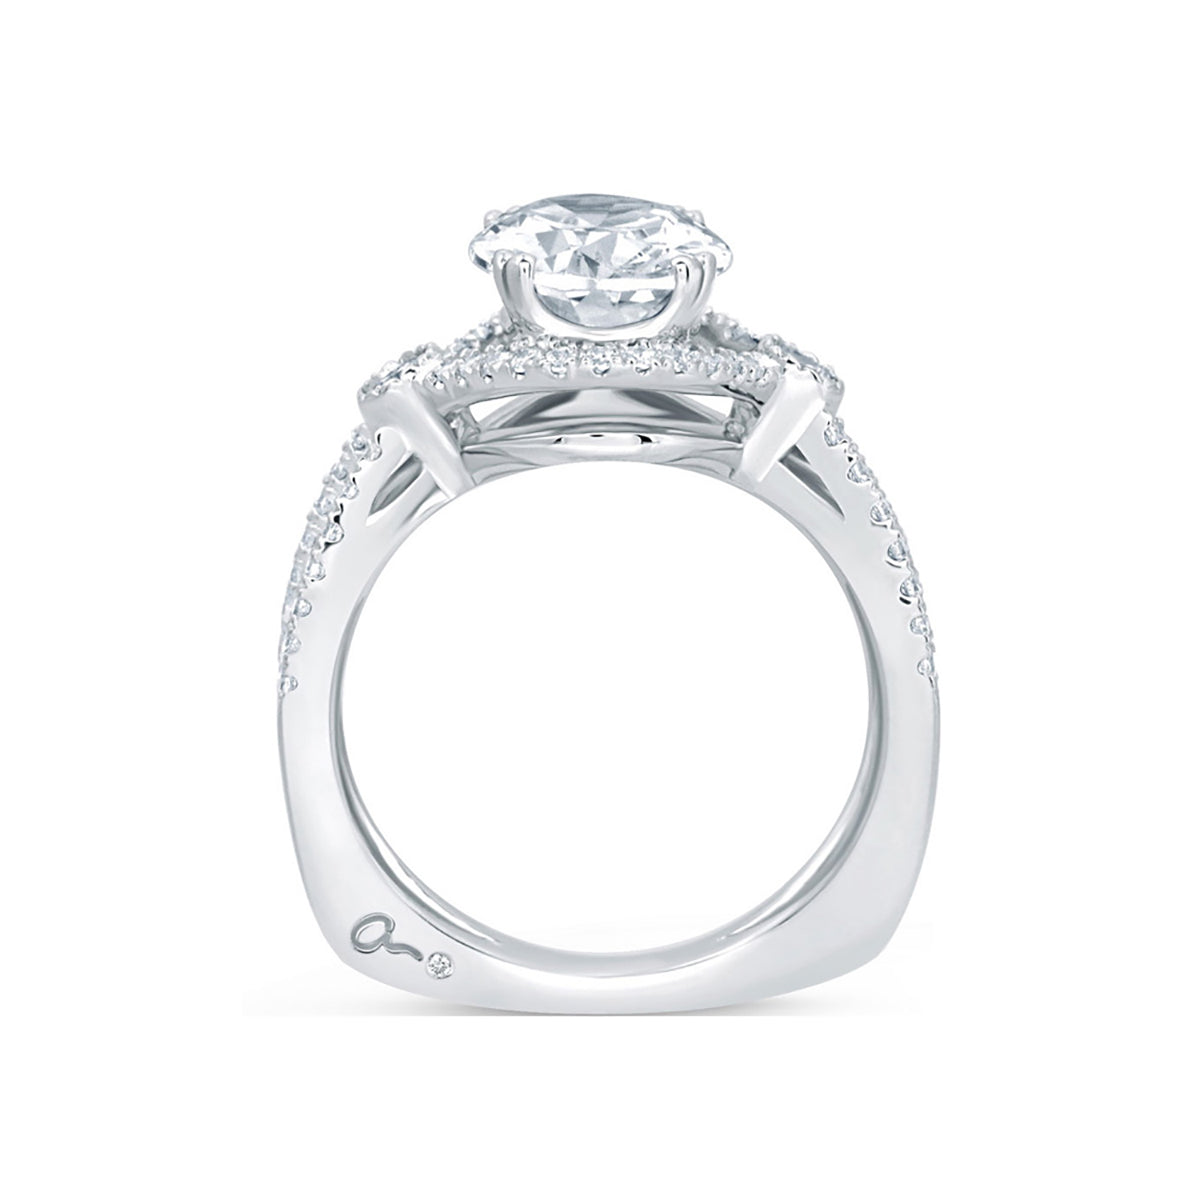 A.Jaffe Deco Double Shank Bubble Prong Engagement Ring with Oval Center Diamond MES648/134